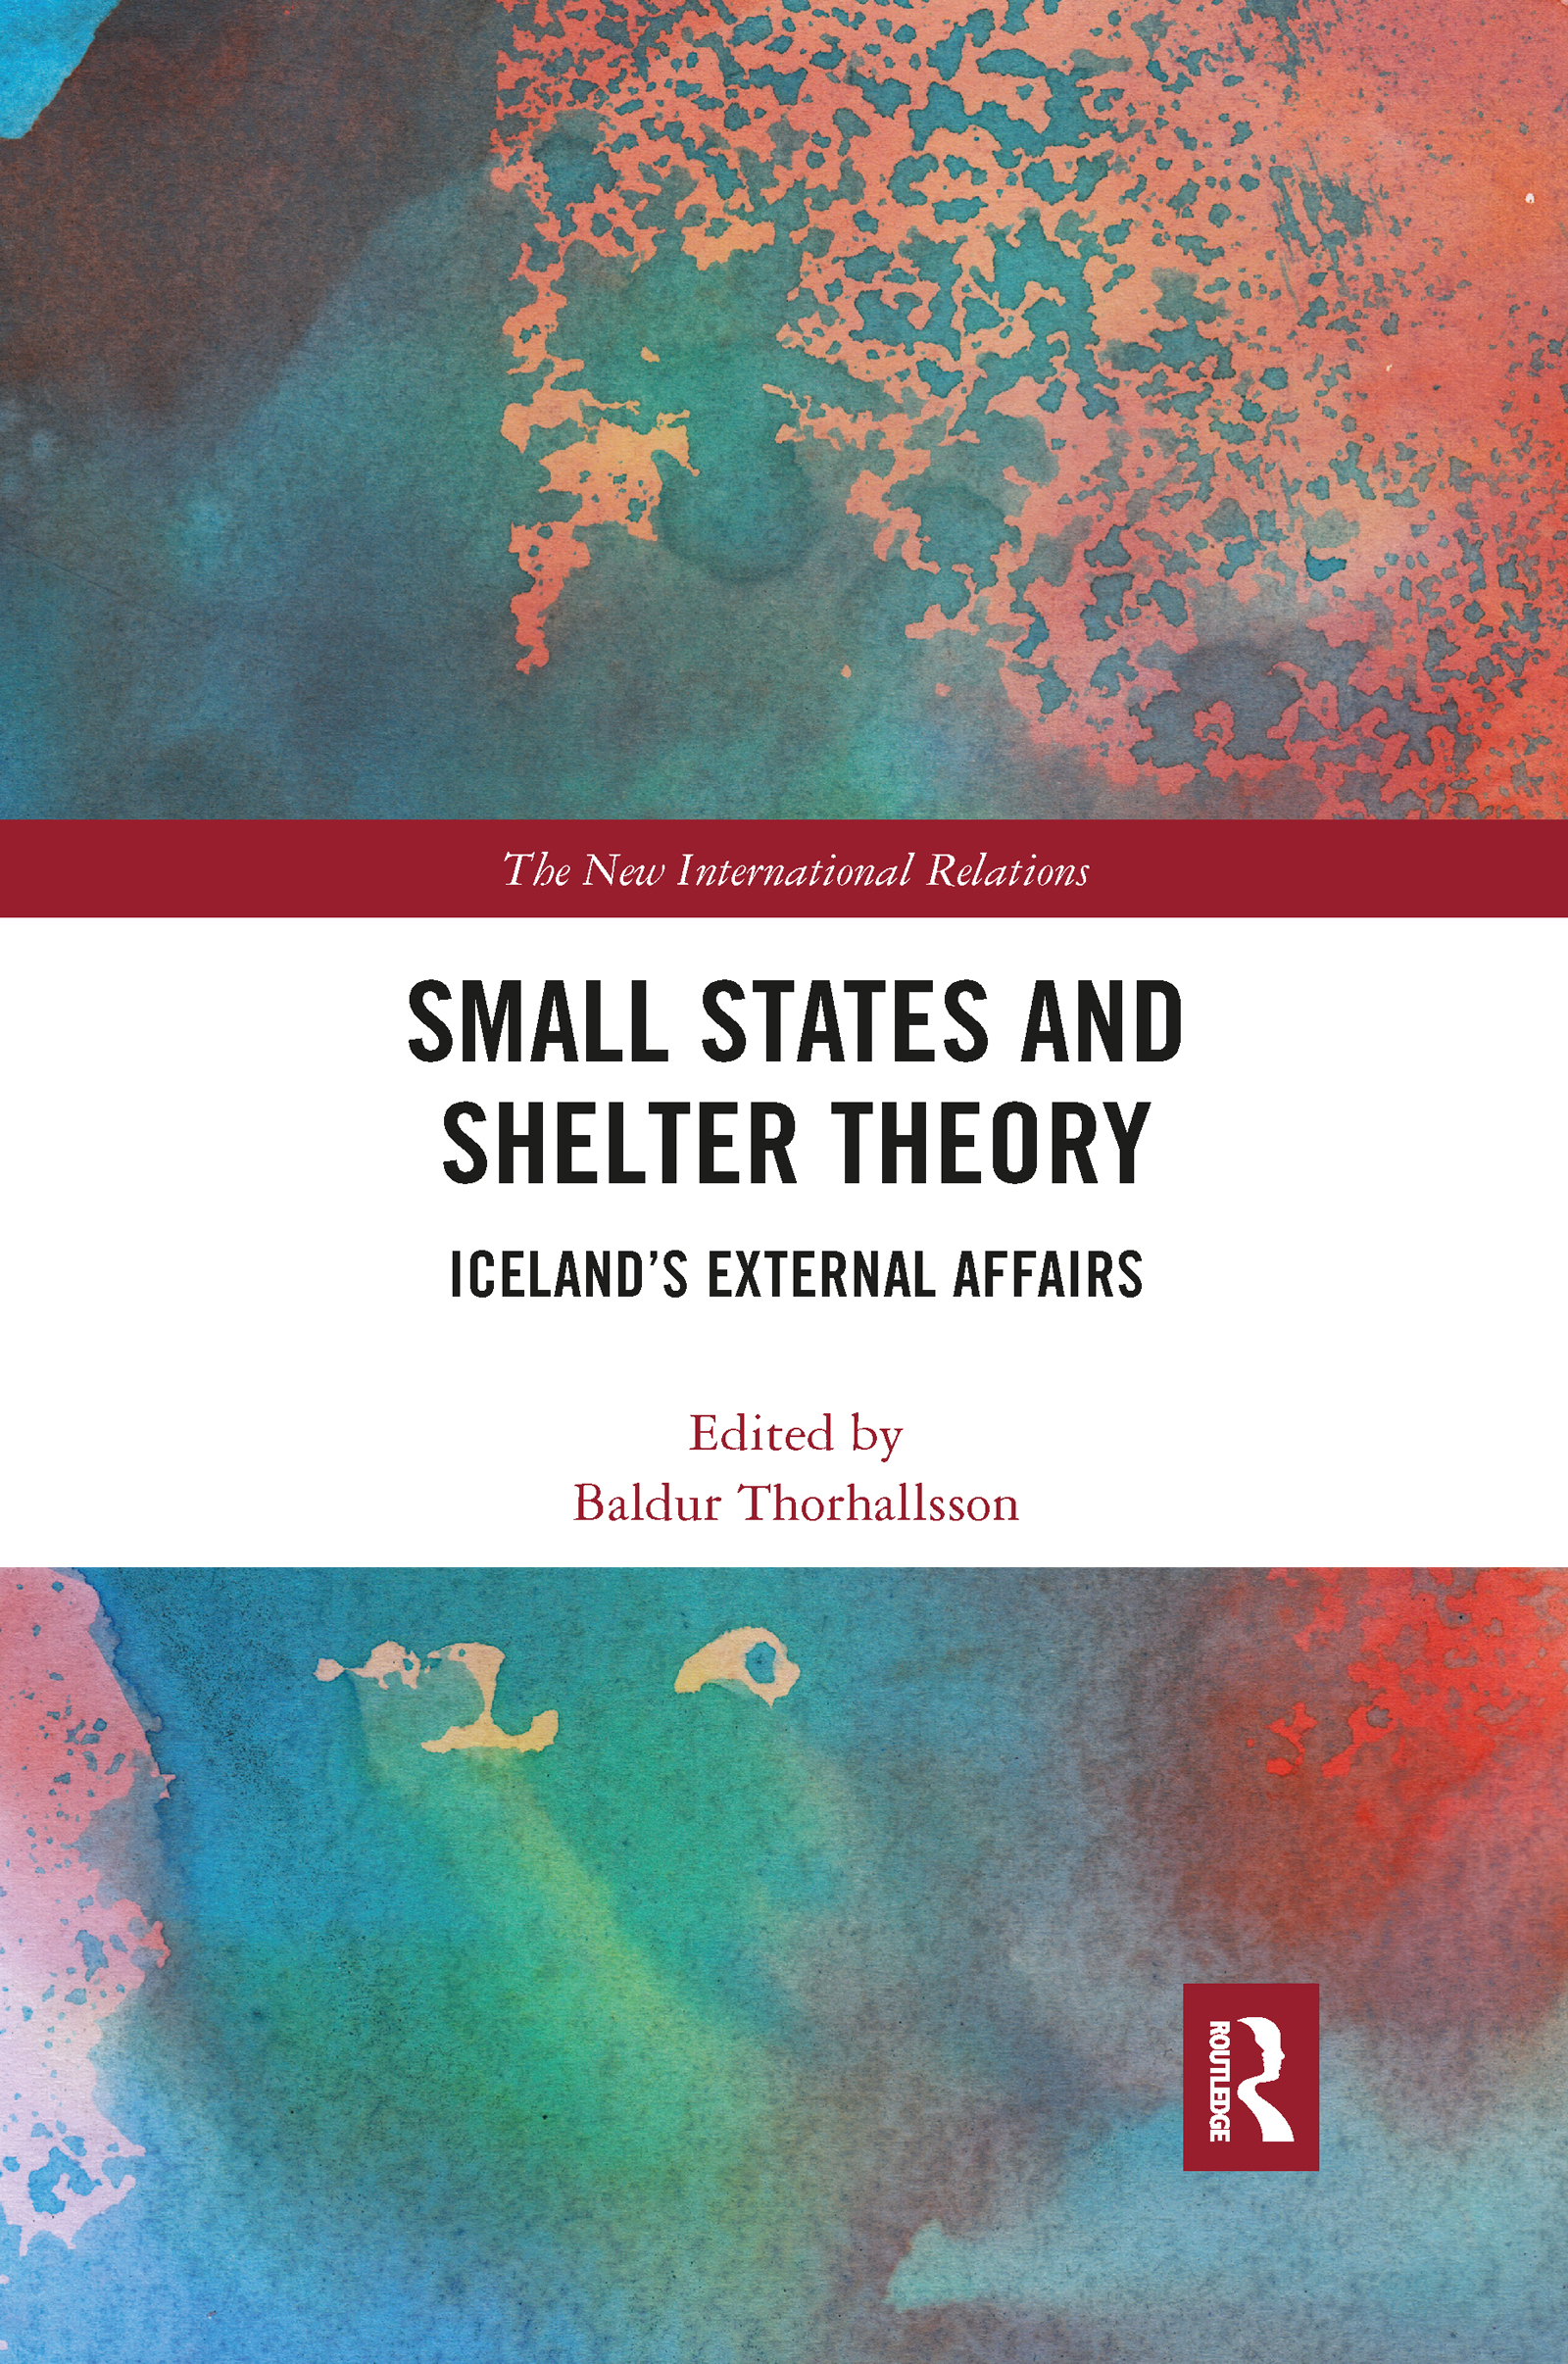 Small States and Shelter Theory